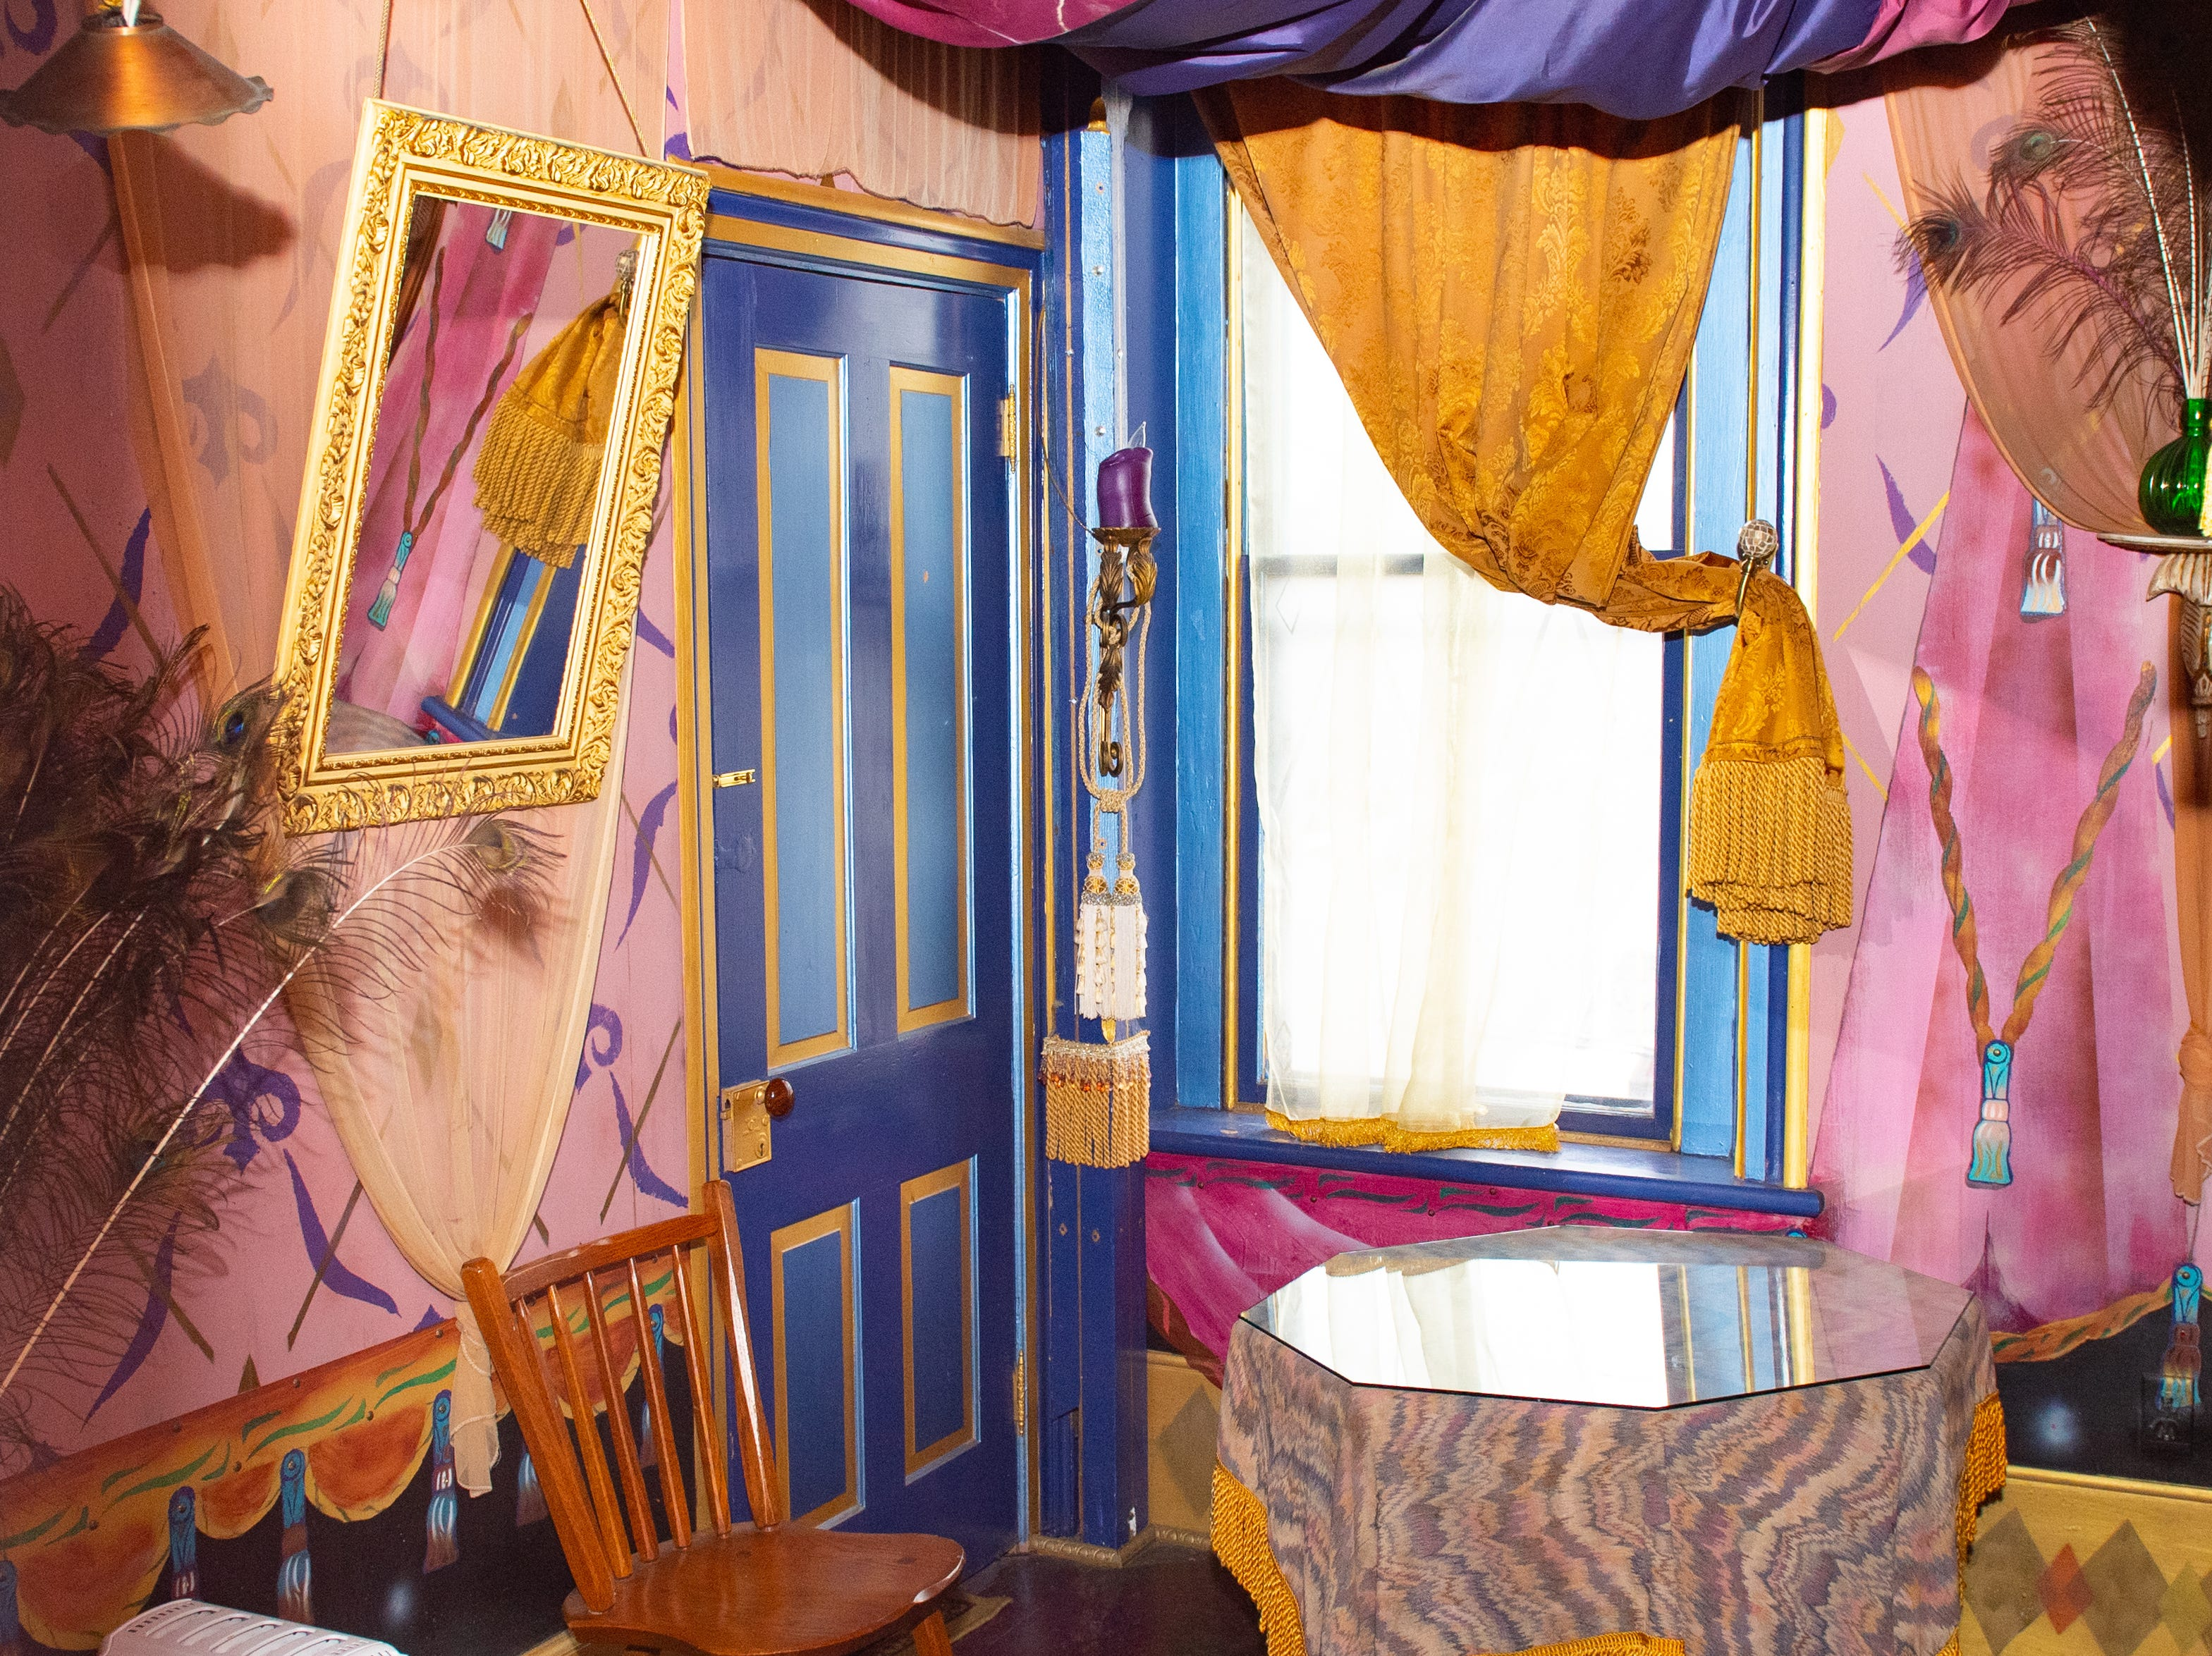 """Inside the colorful """"Southwestern"""" at the Victorian hotel portion of Bube's Brewery. The hotel has 8 uniquely themed rooms and a grand suite. Rooms can be reserved for $100/night, the suite for $200/night, February 22, 2019."""